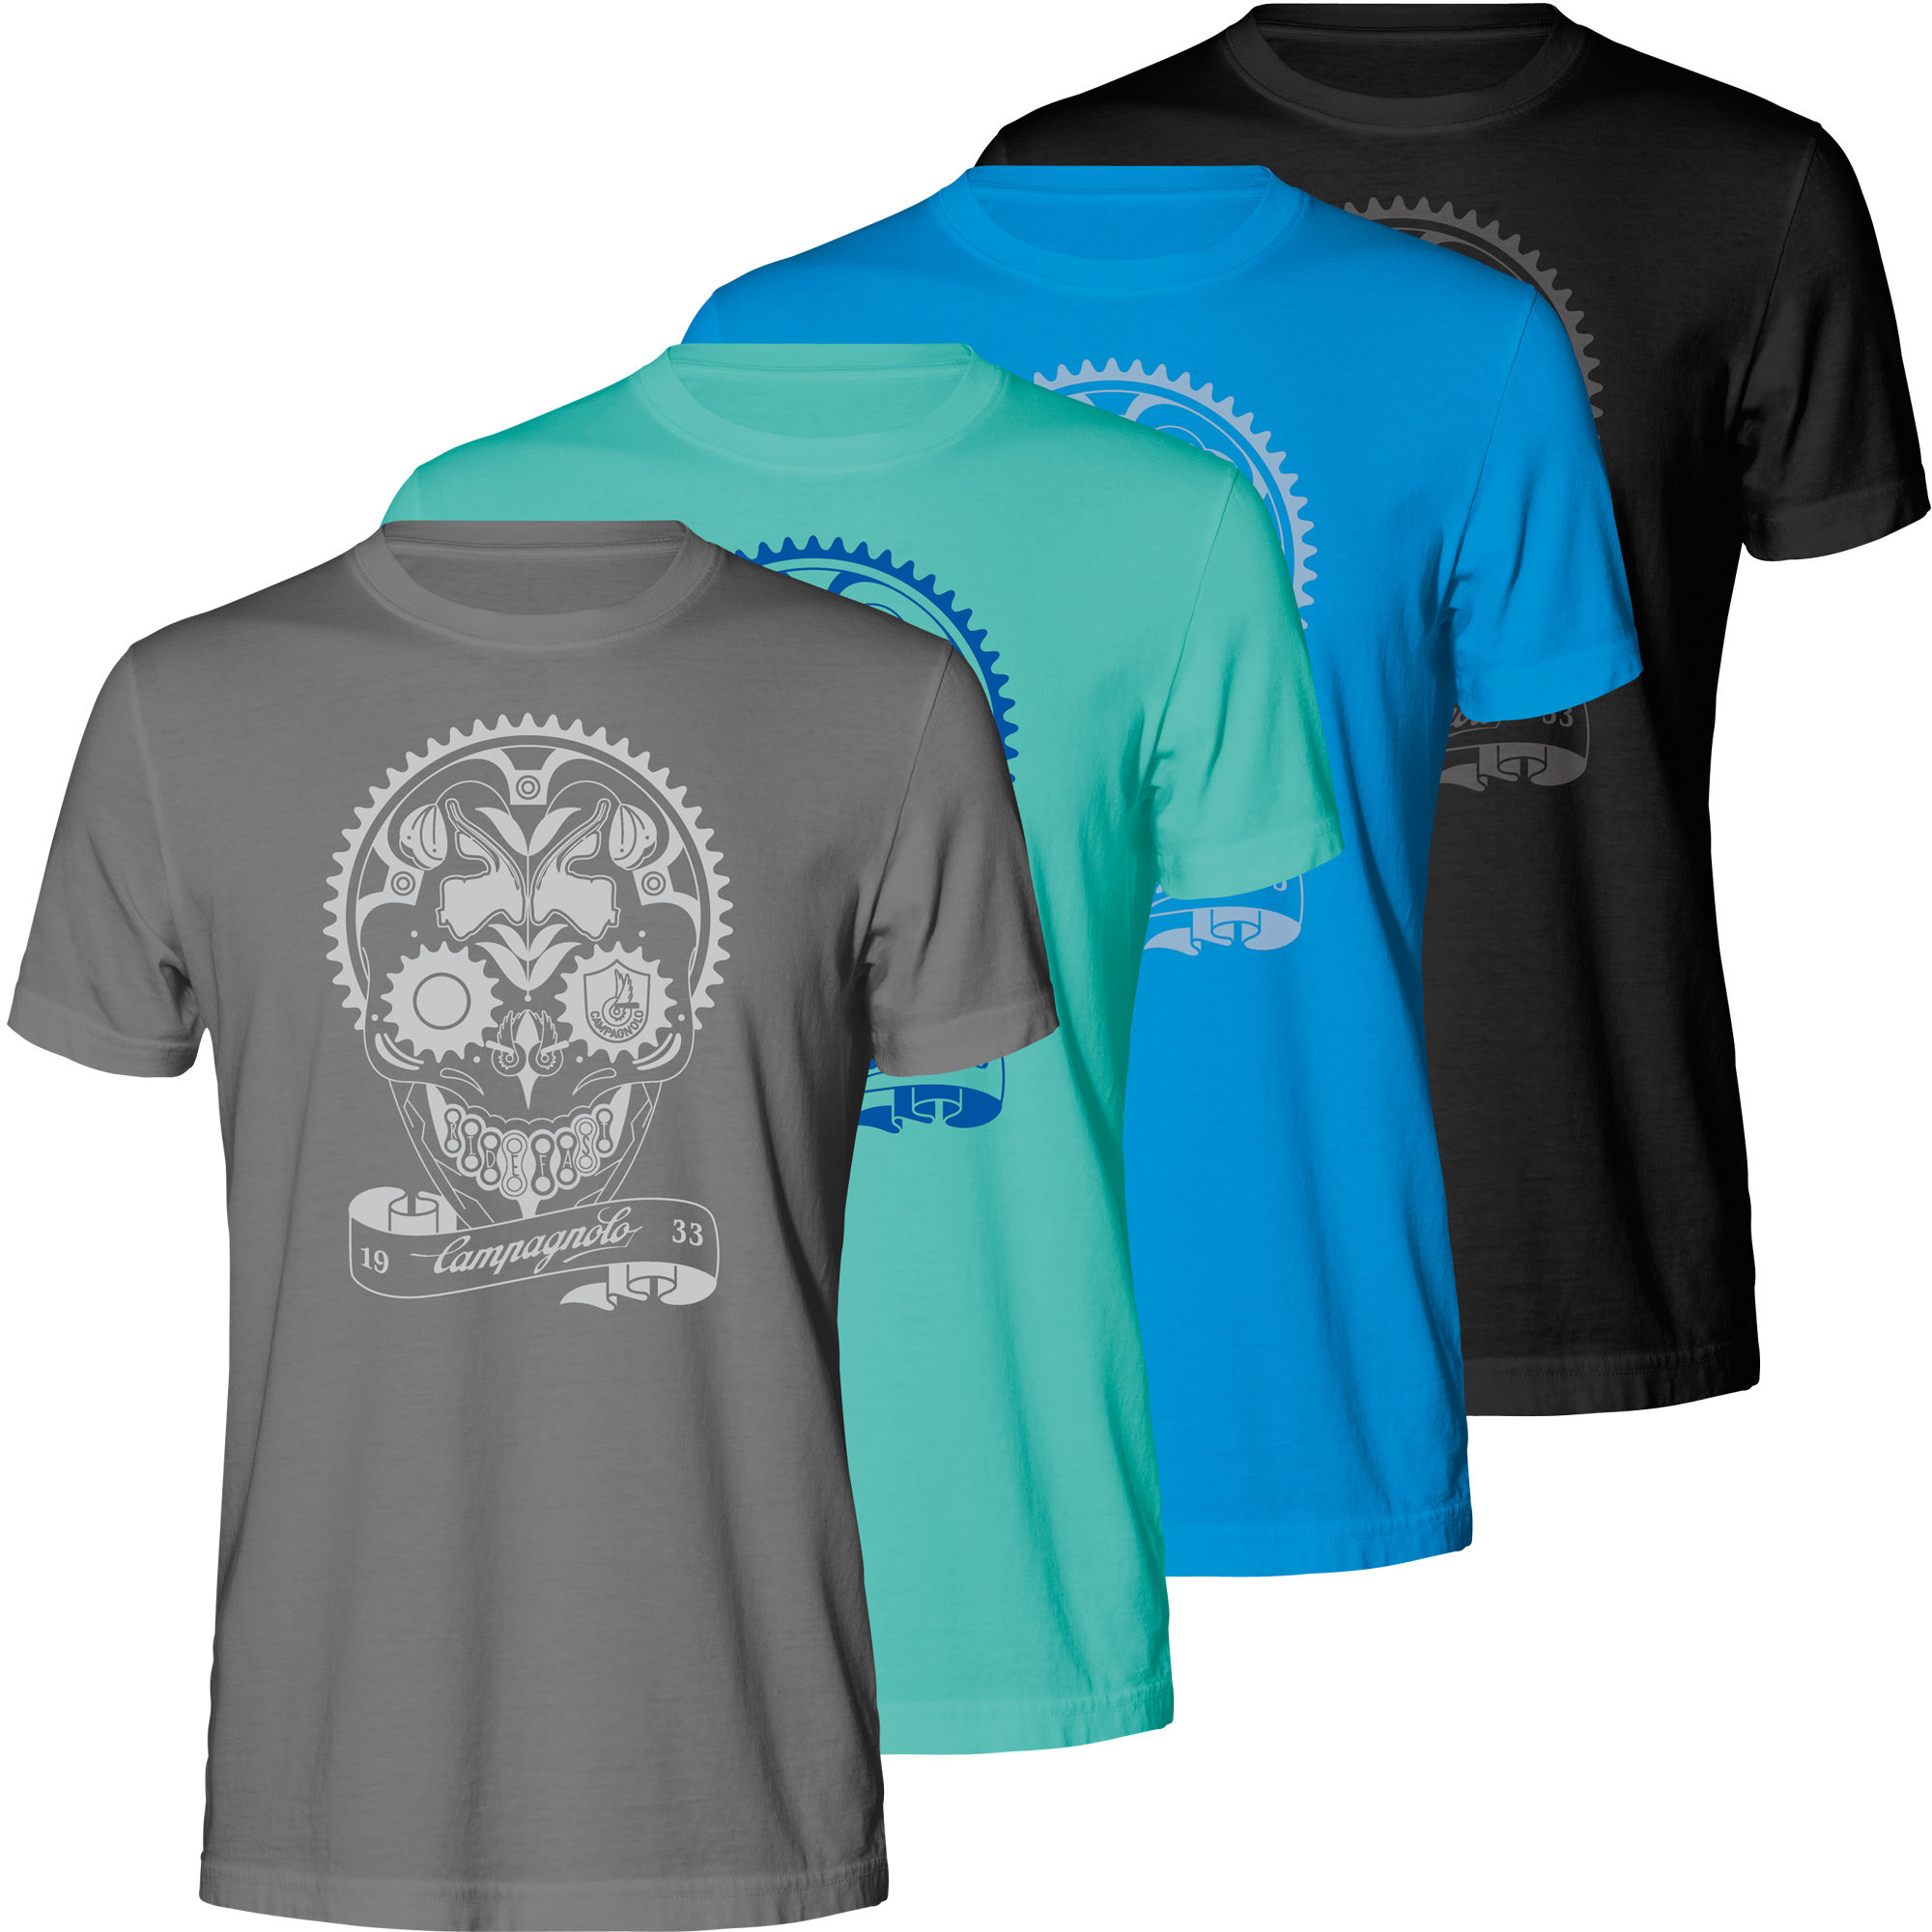 Wiggle Campagnolo Heritage TecknoFace T Shirt